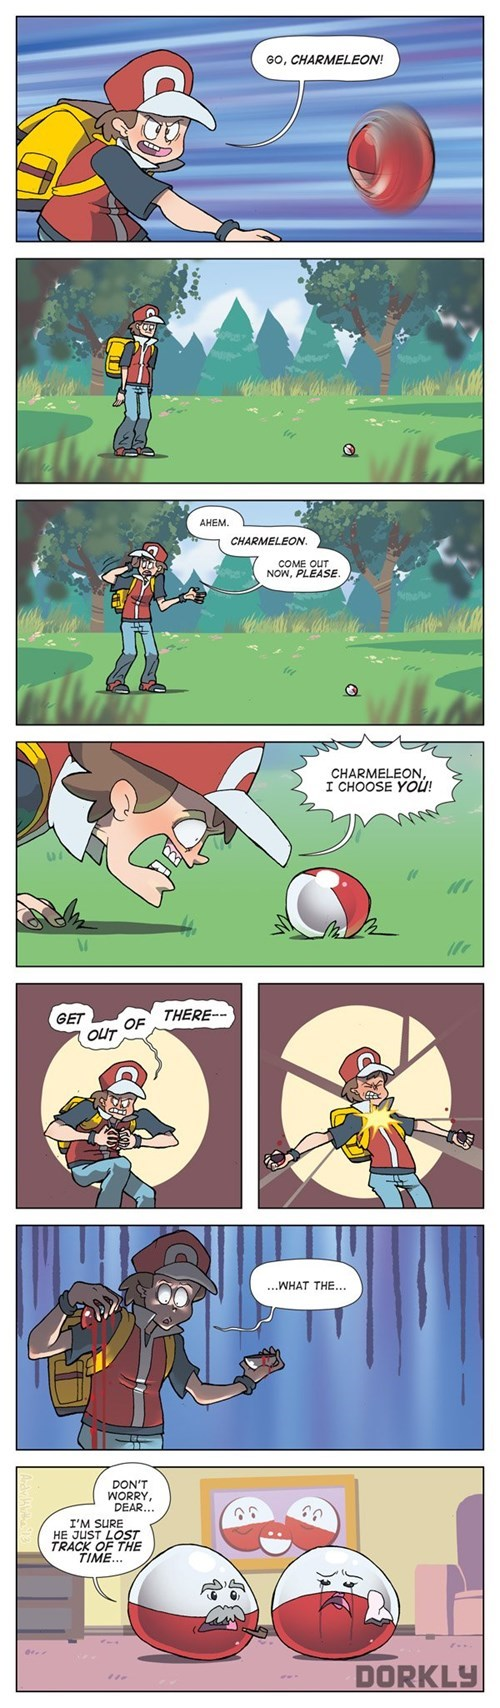 The Most Stubborn Pokemon